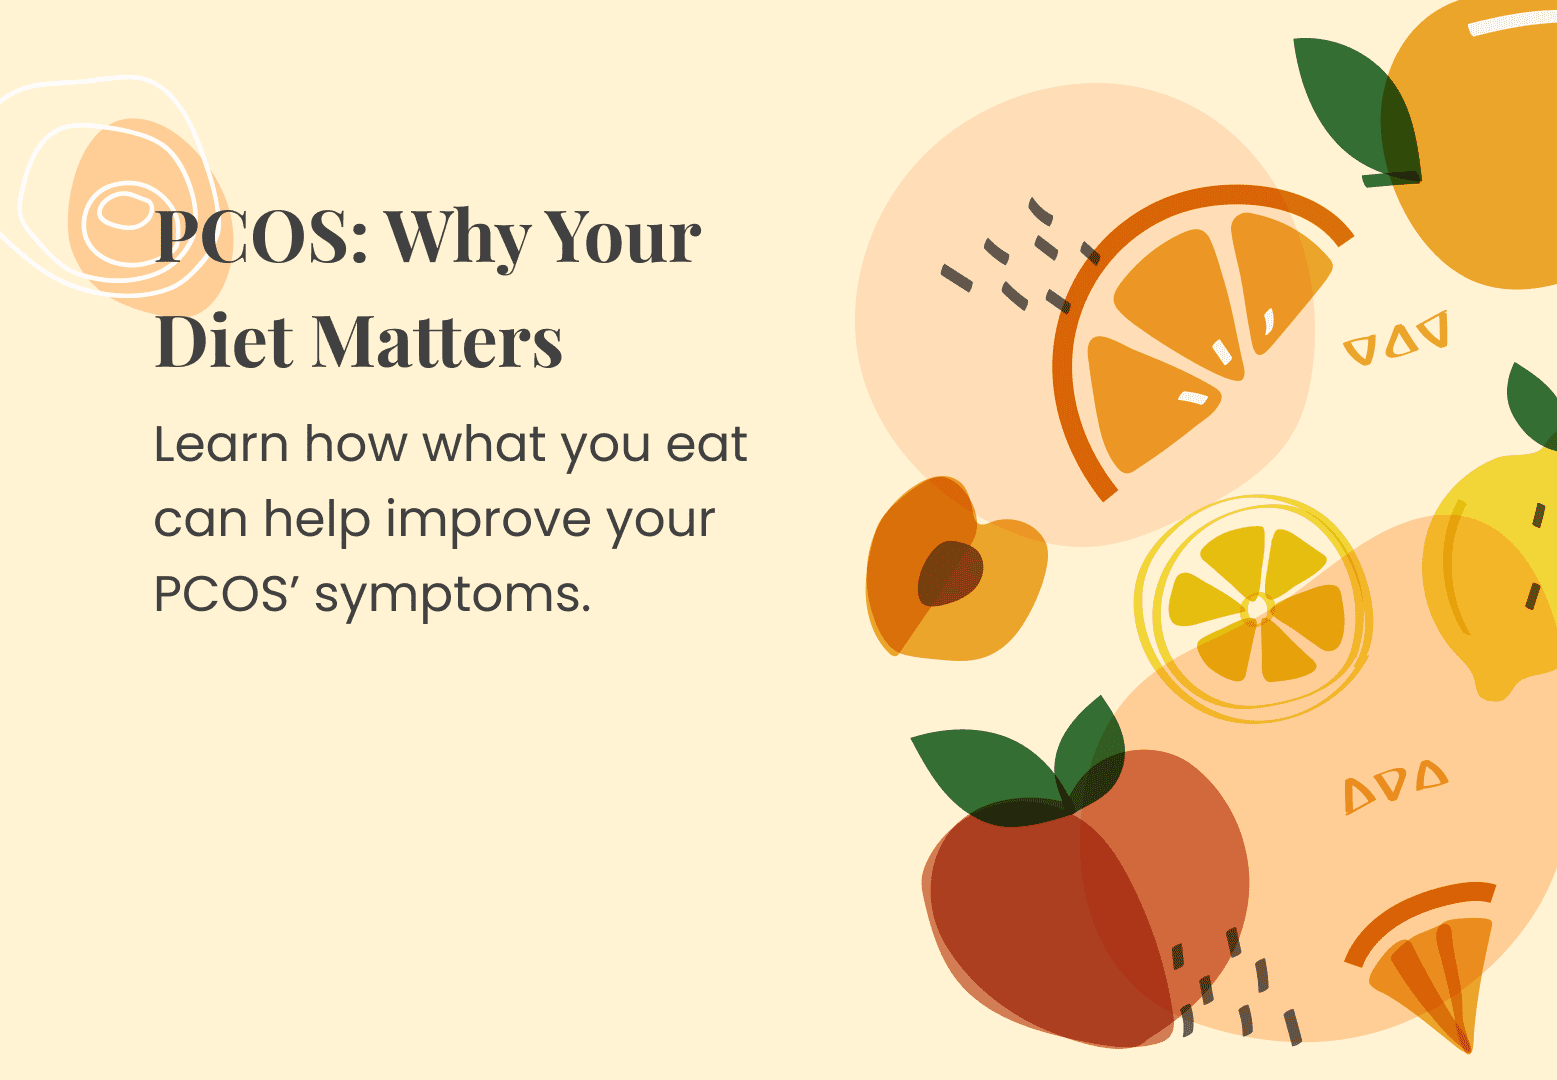 PCOS: Why Your Diet Matters